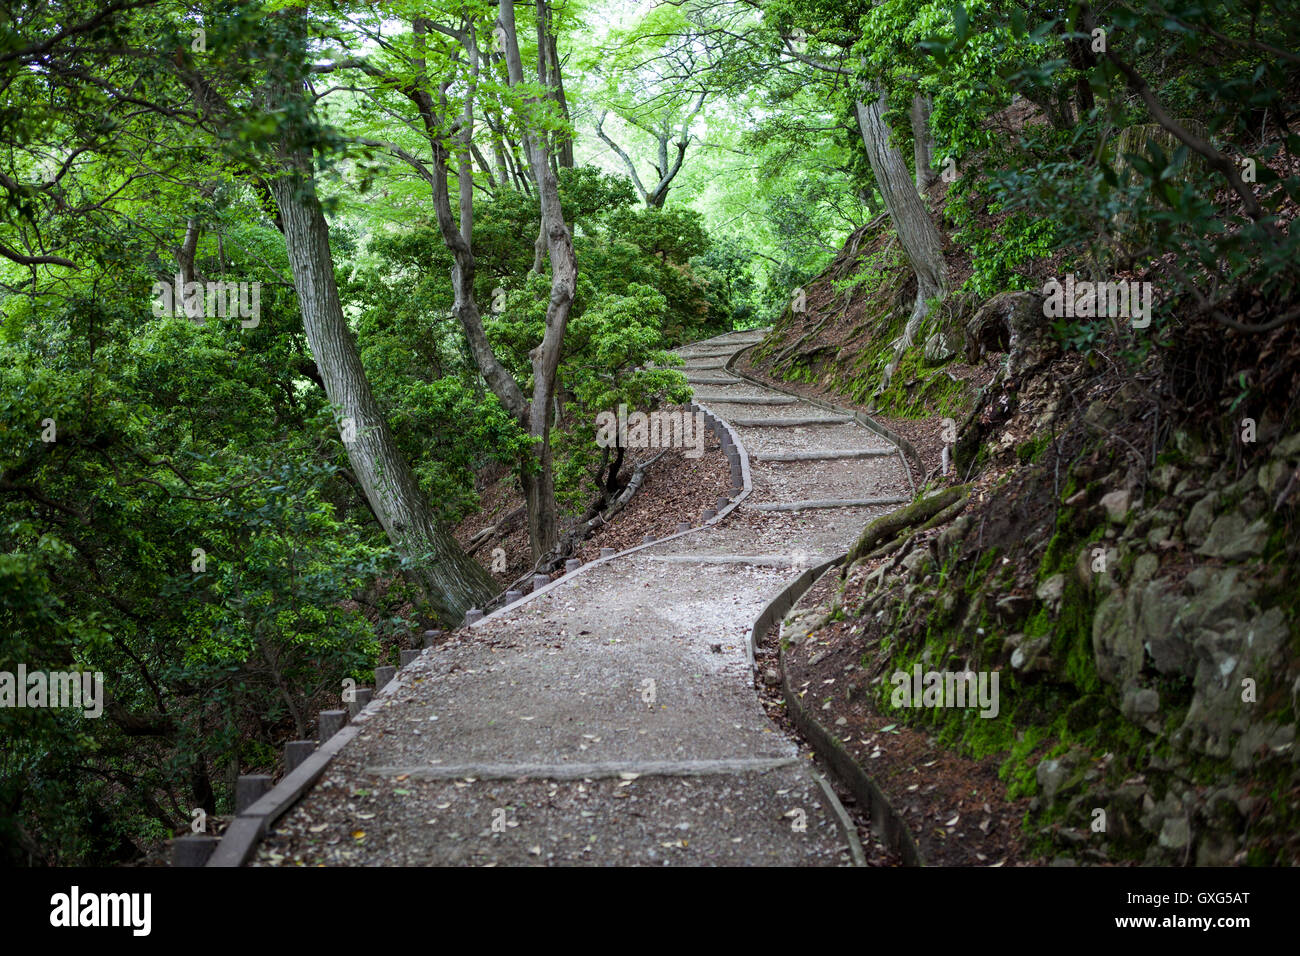 Winding forest path - Stock Image